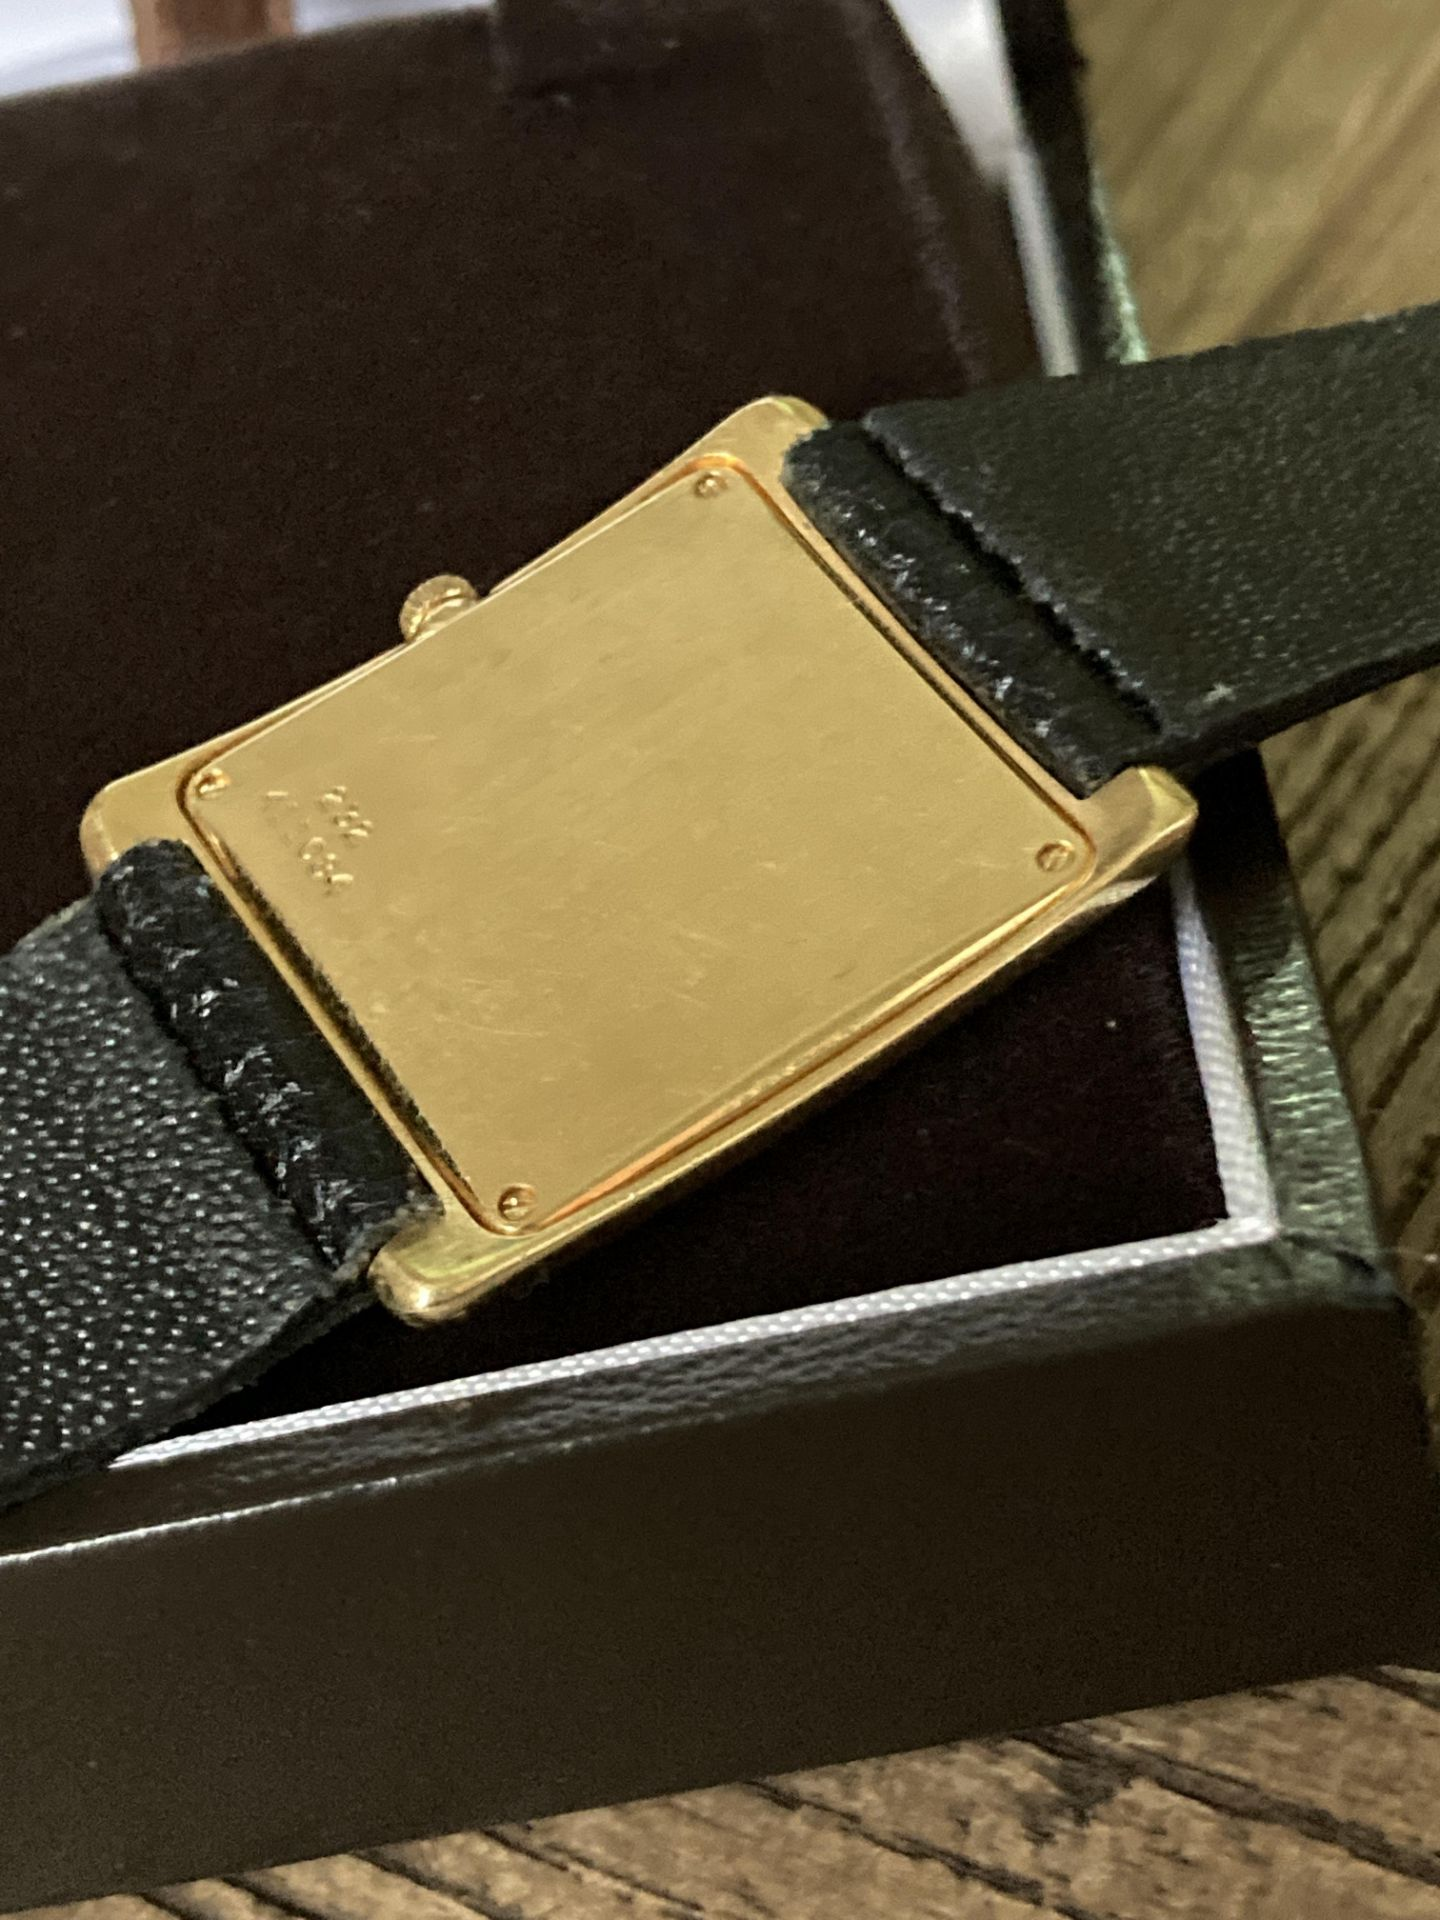 GOLD PIAGET WATCH - 22MM - Image 5 of 6